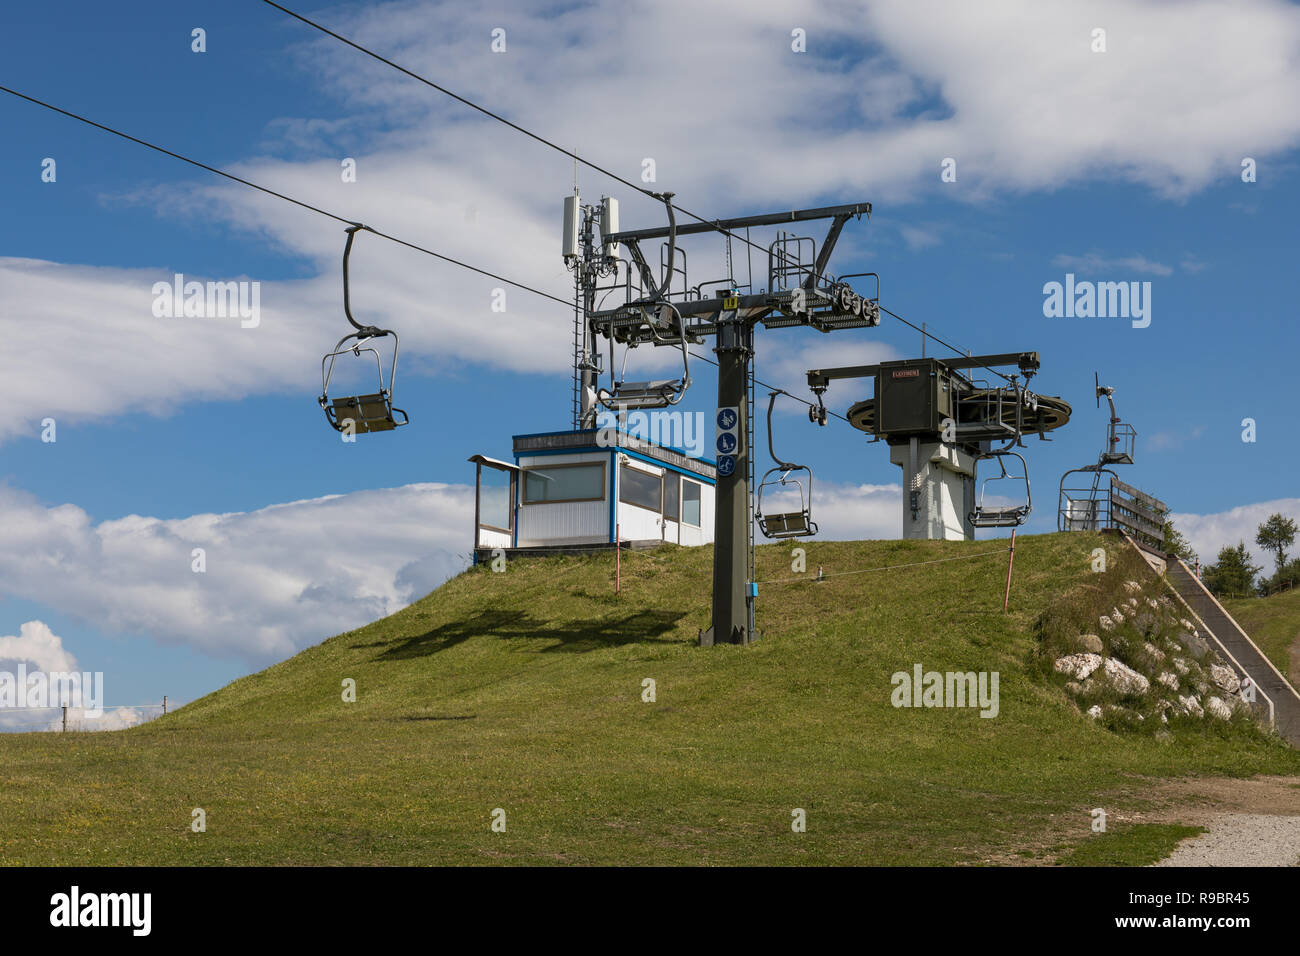 Chairlifts at Alta Badia ski area in the summer, Dolomites, Italy Stock Photo